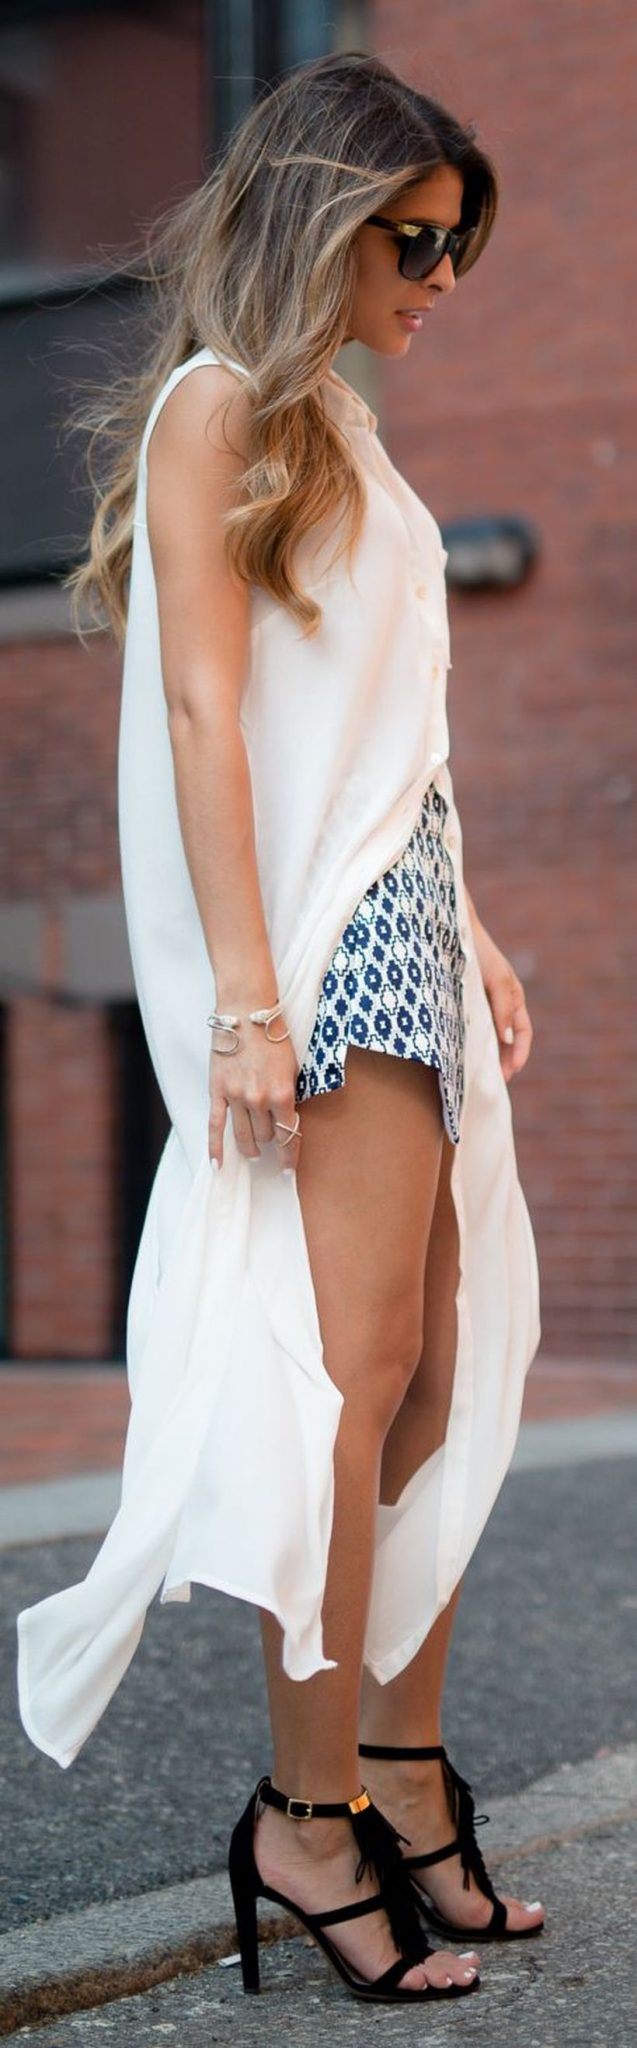 Stunning white shirtdresses outfits 17